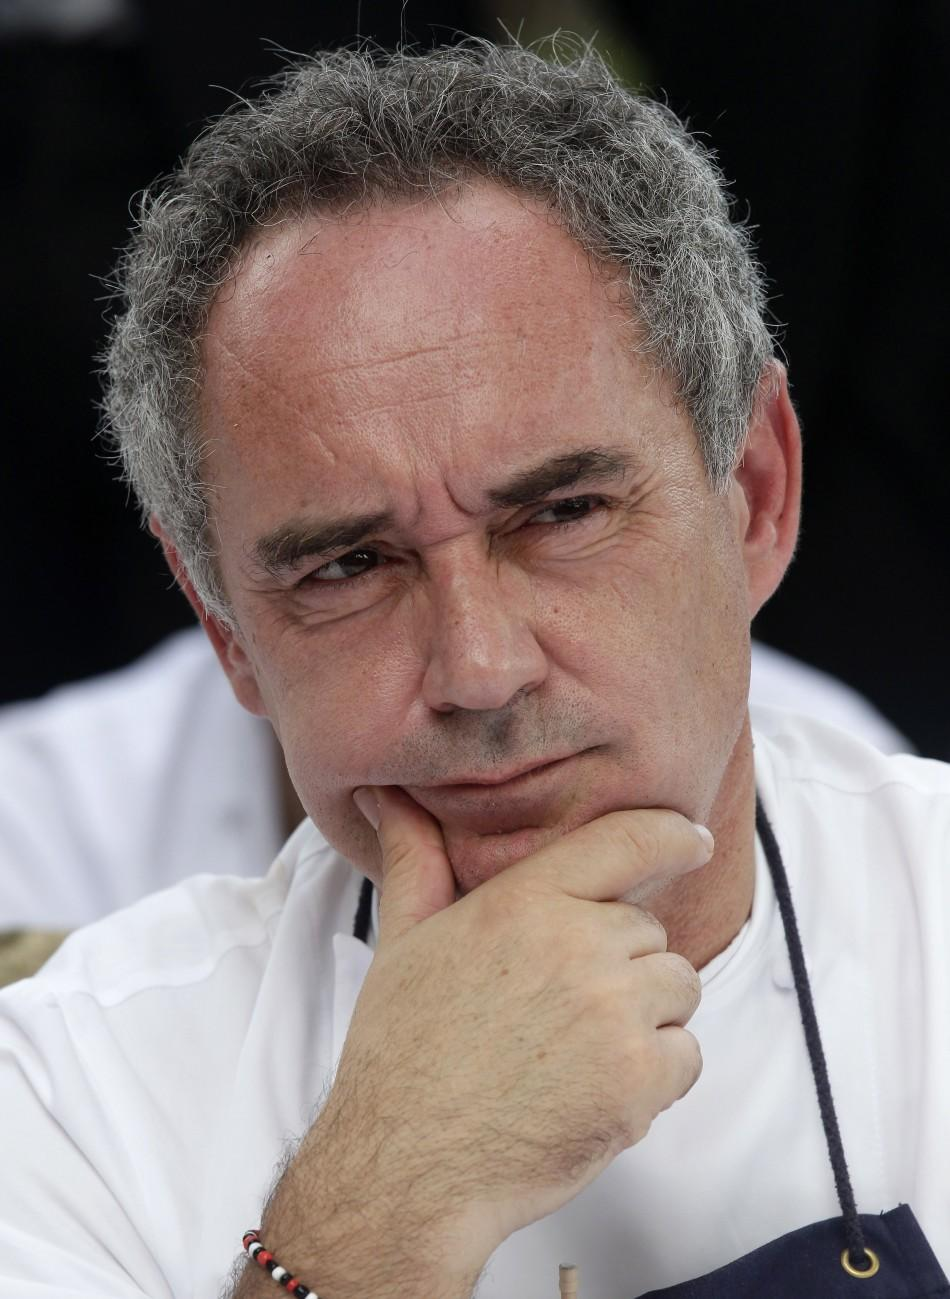 Ferran Adria, chef and co-owner of El Bulli restaurant, gestures during a news conference outside the restaurant in Cala Montjoi, near Roses